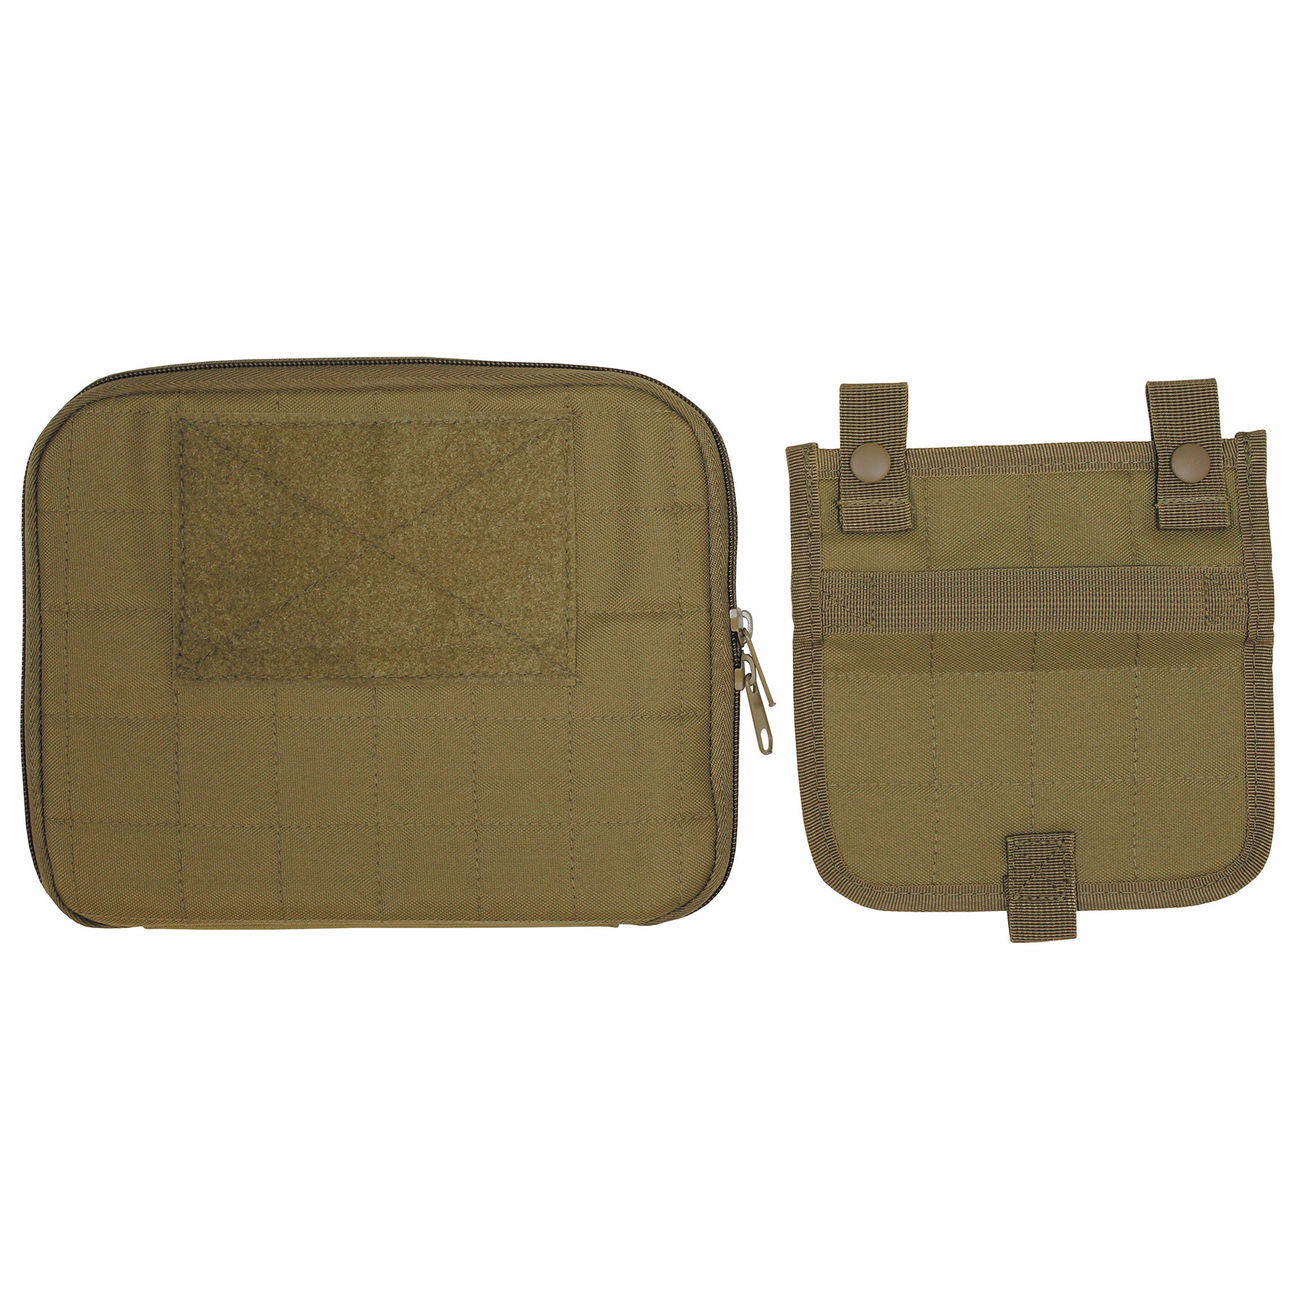 MFH Tablet-Tasche Molle coyote tan 3